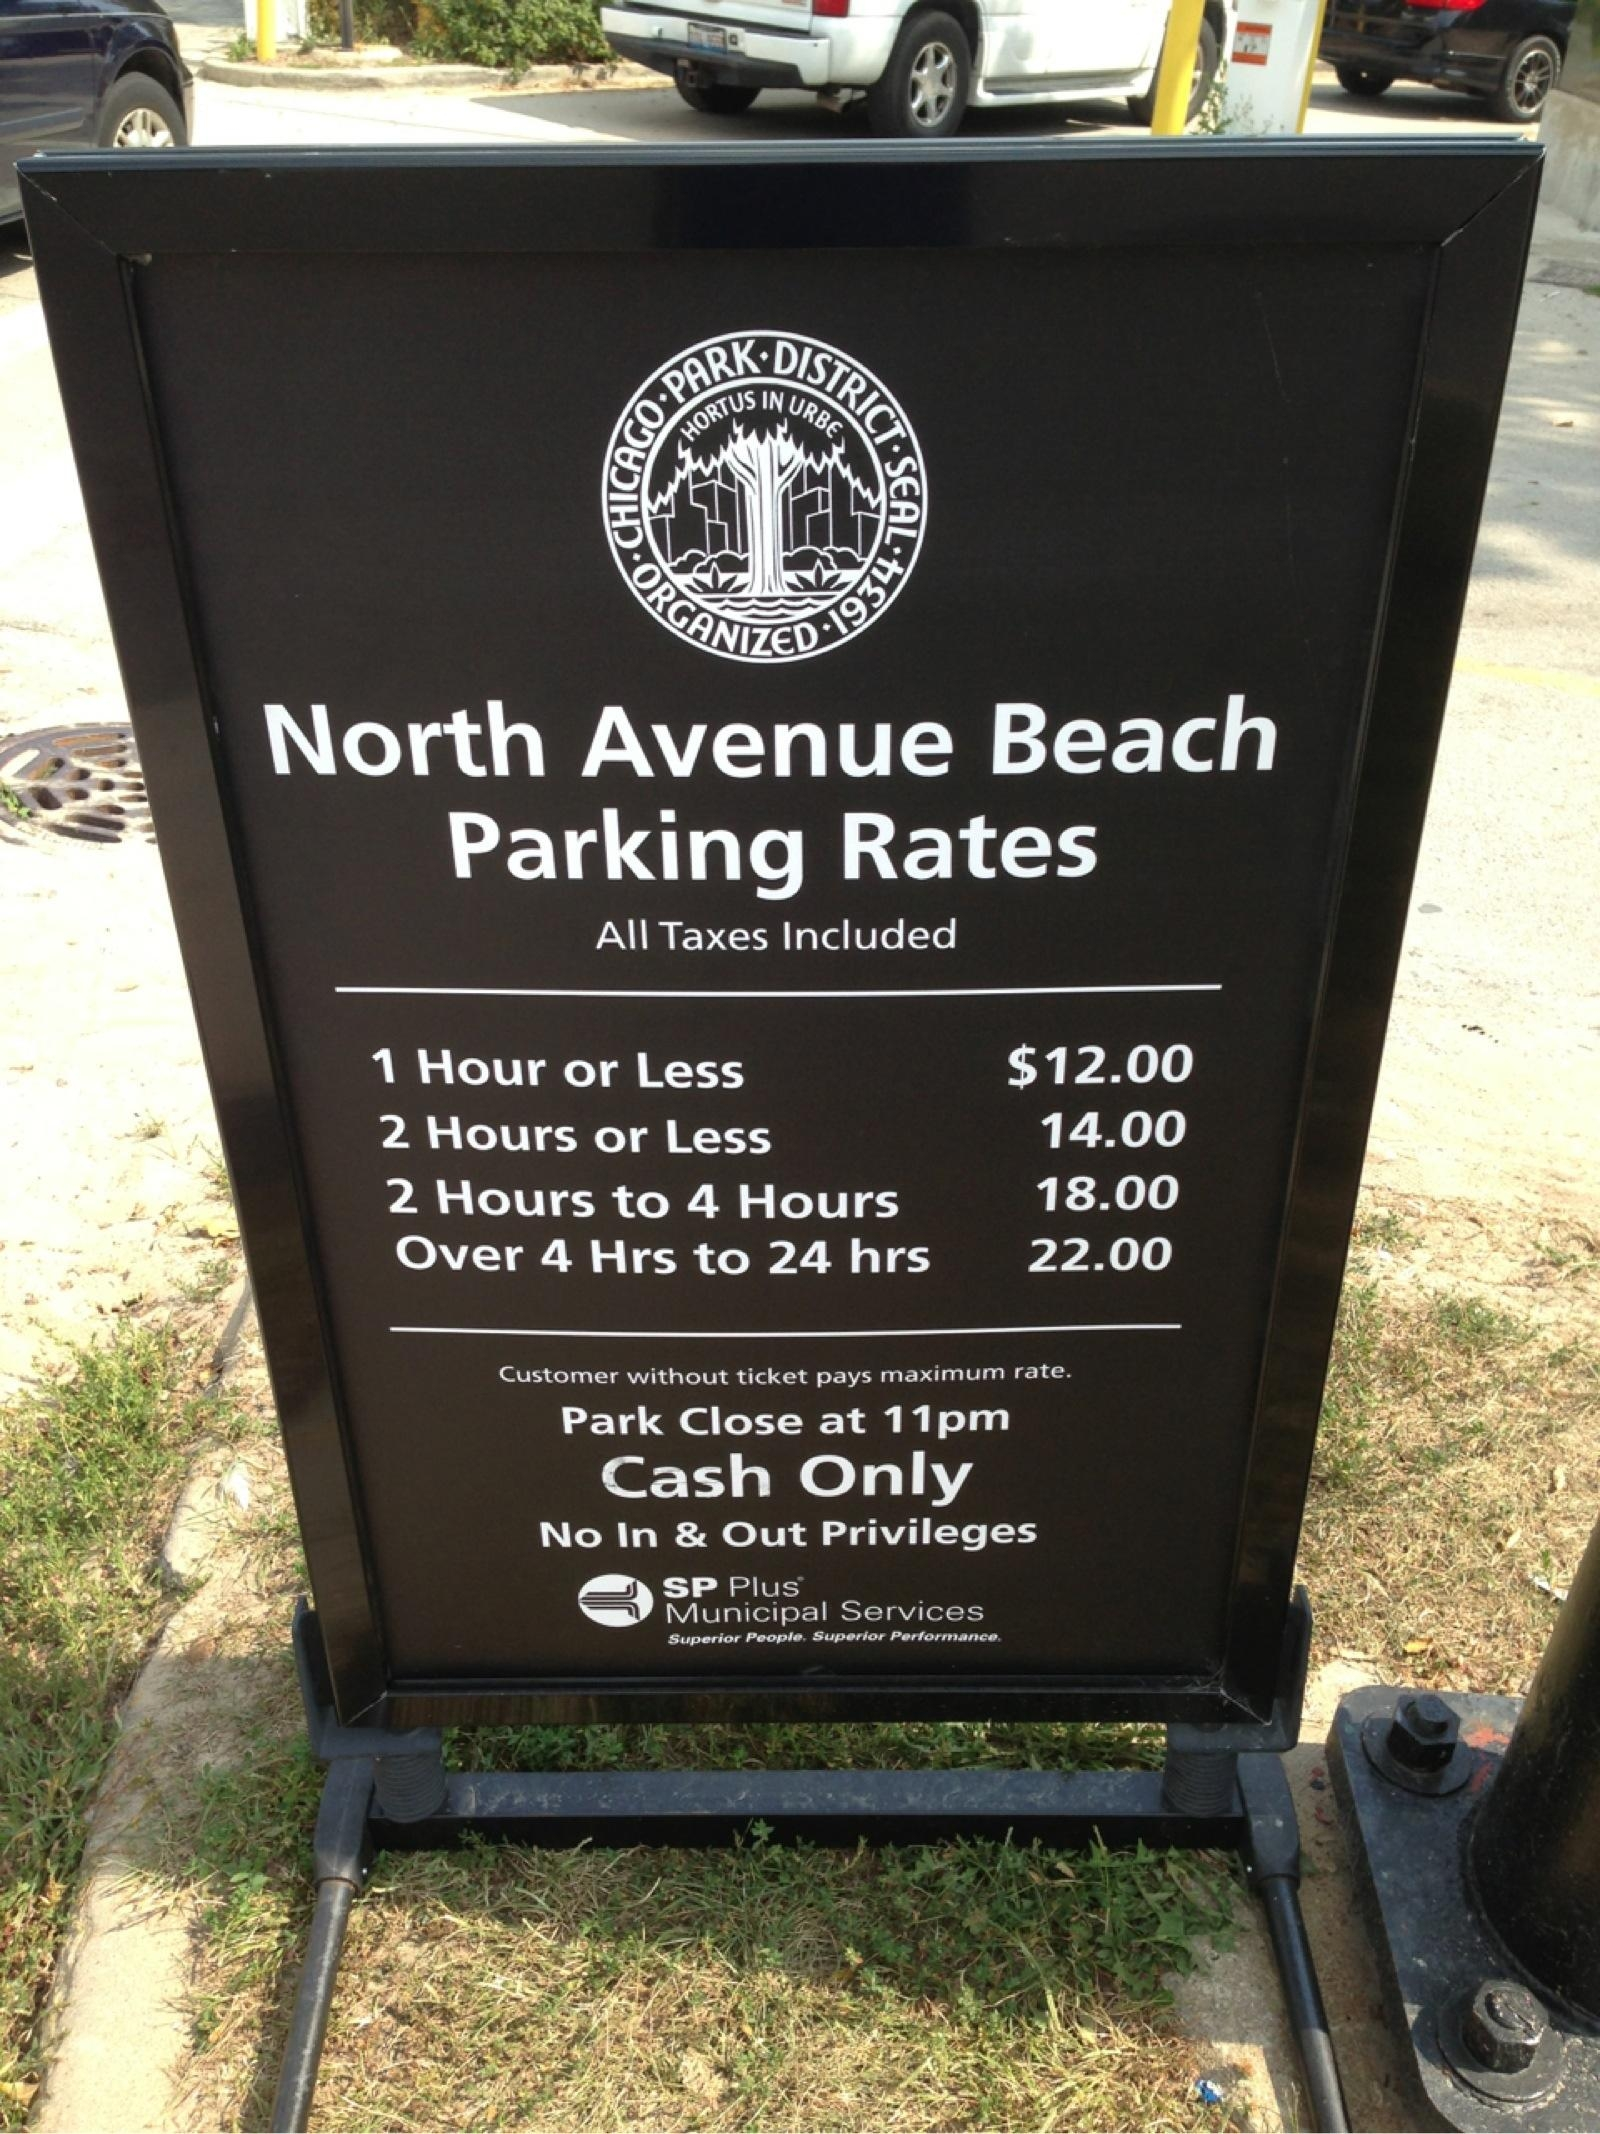 North Avenue Beach Parking Parking In Chicago ParkMe - Chicago map north avenue beach